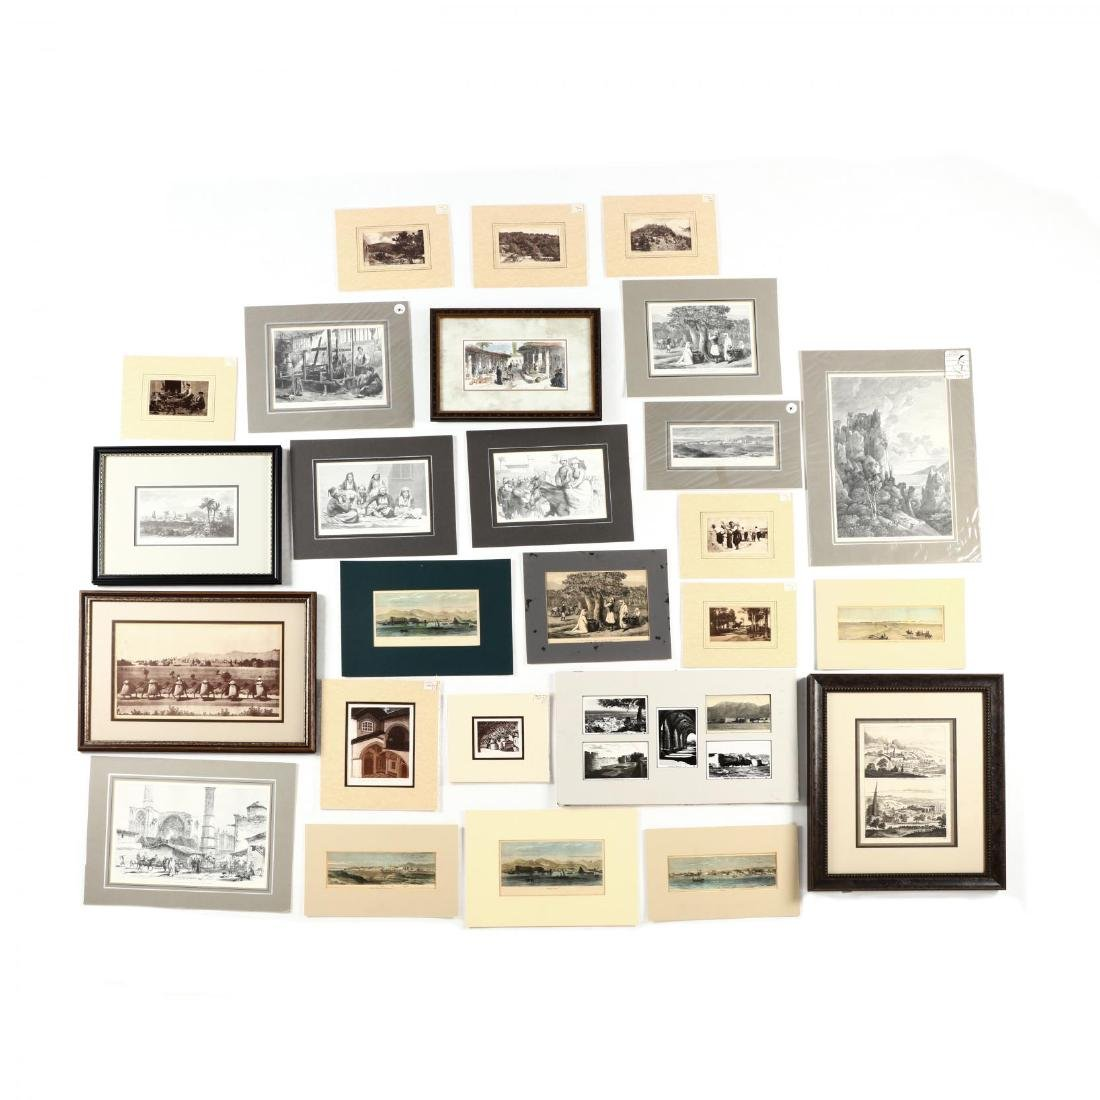 Group of Engravings and Photographs Documenting Old